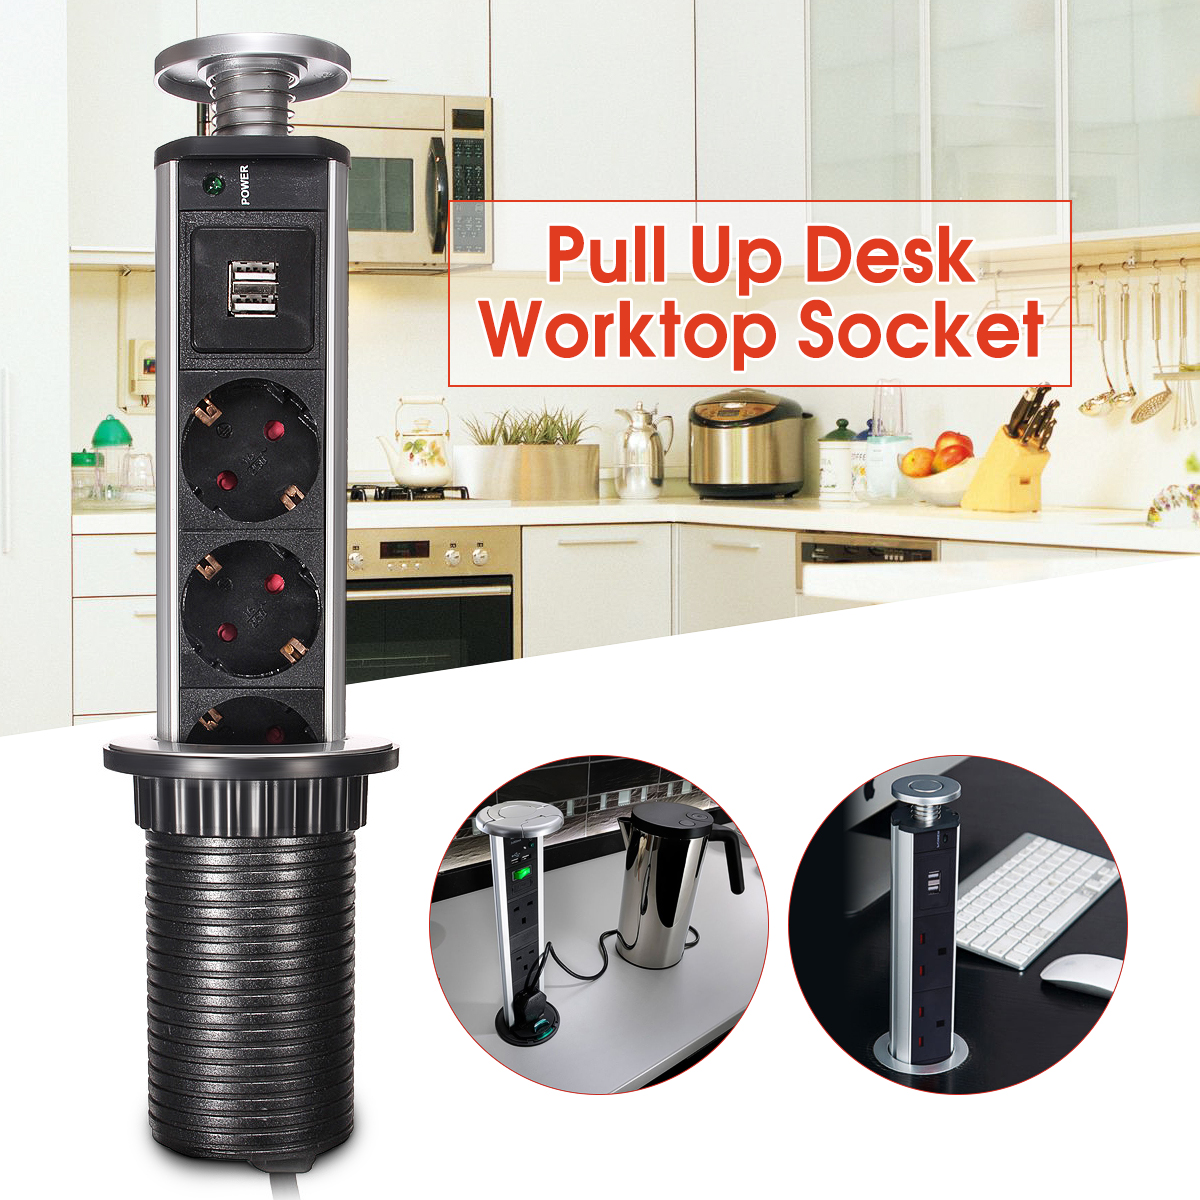 Pop Pull Up Power Point Socket 2 USB Charger Electrical Sockets for Home Office Kitchen Worktop Desk Socket